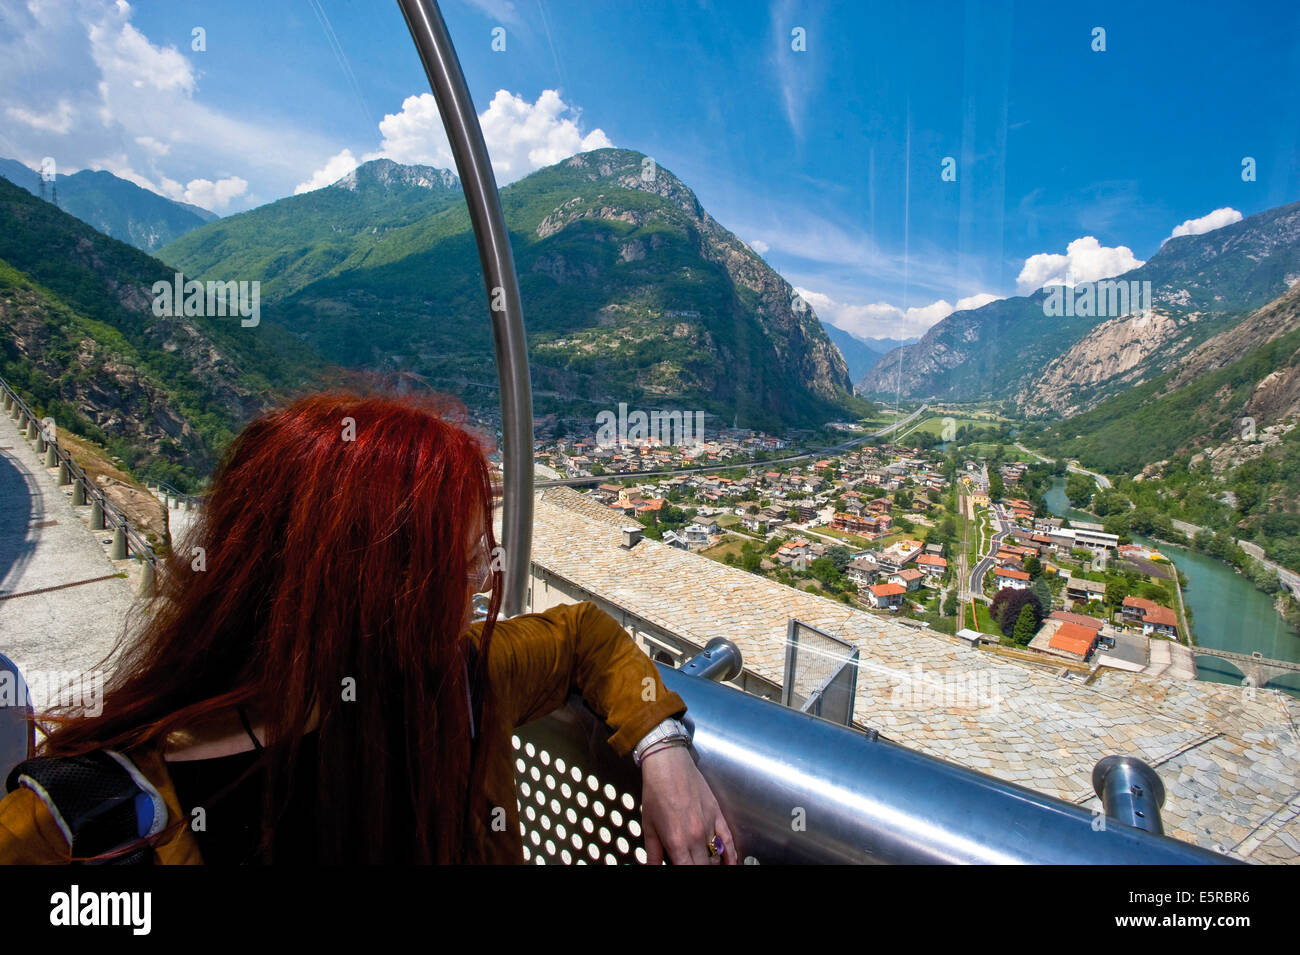 Italy Valley of Aosta Bard the Fort From the panoramic elevator - Stock Image